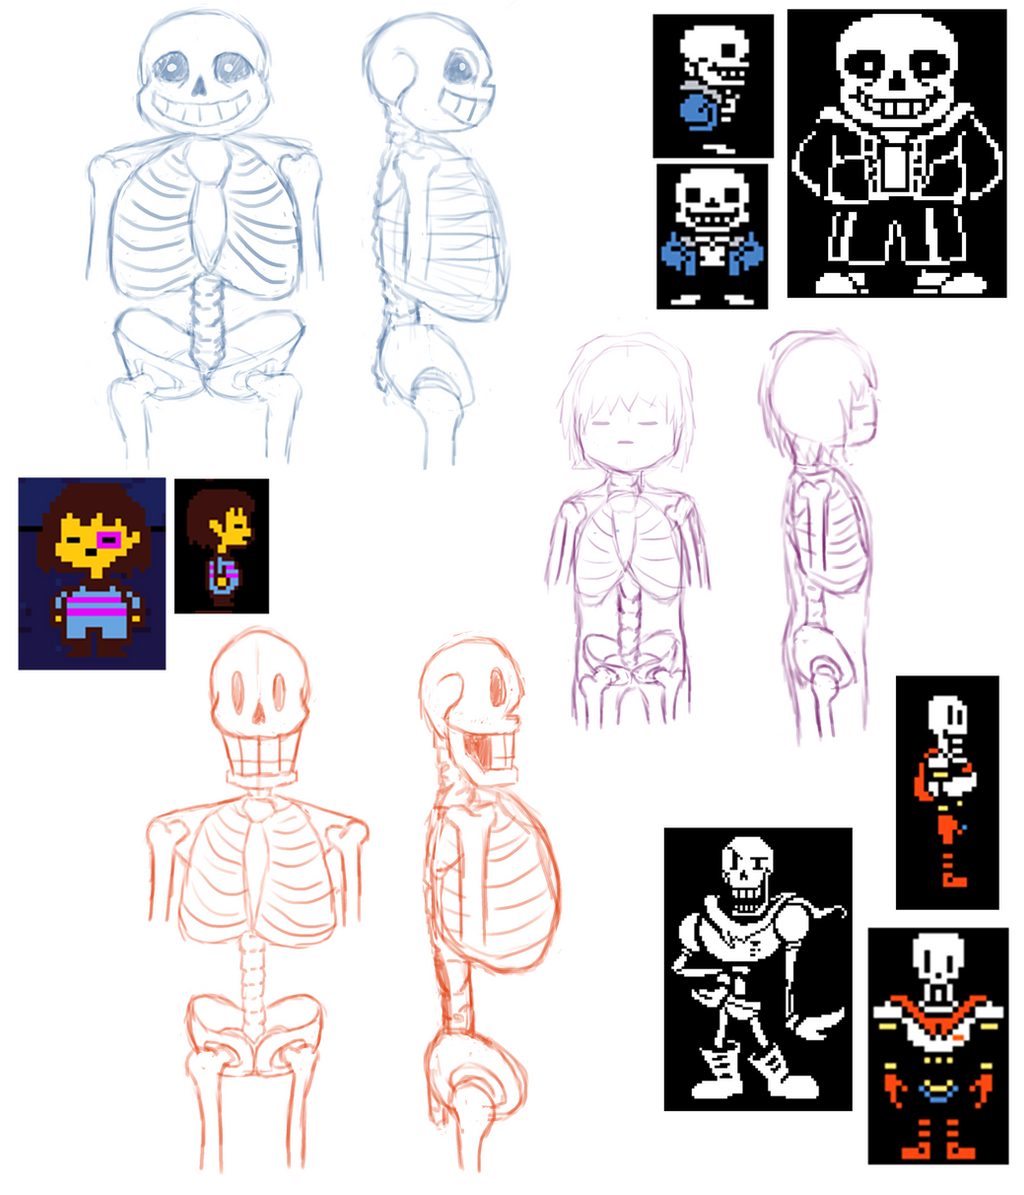 Undertale - Skeleton Anatomy? by music-lover707 on DeviantArt